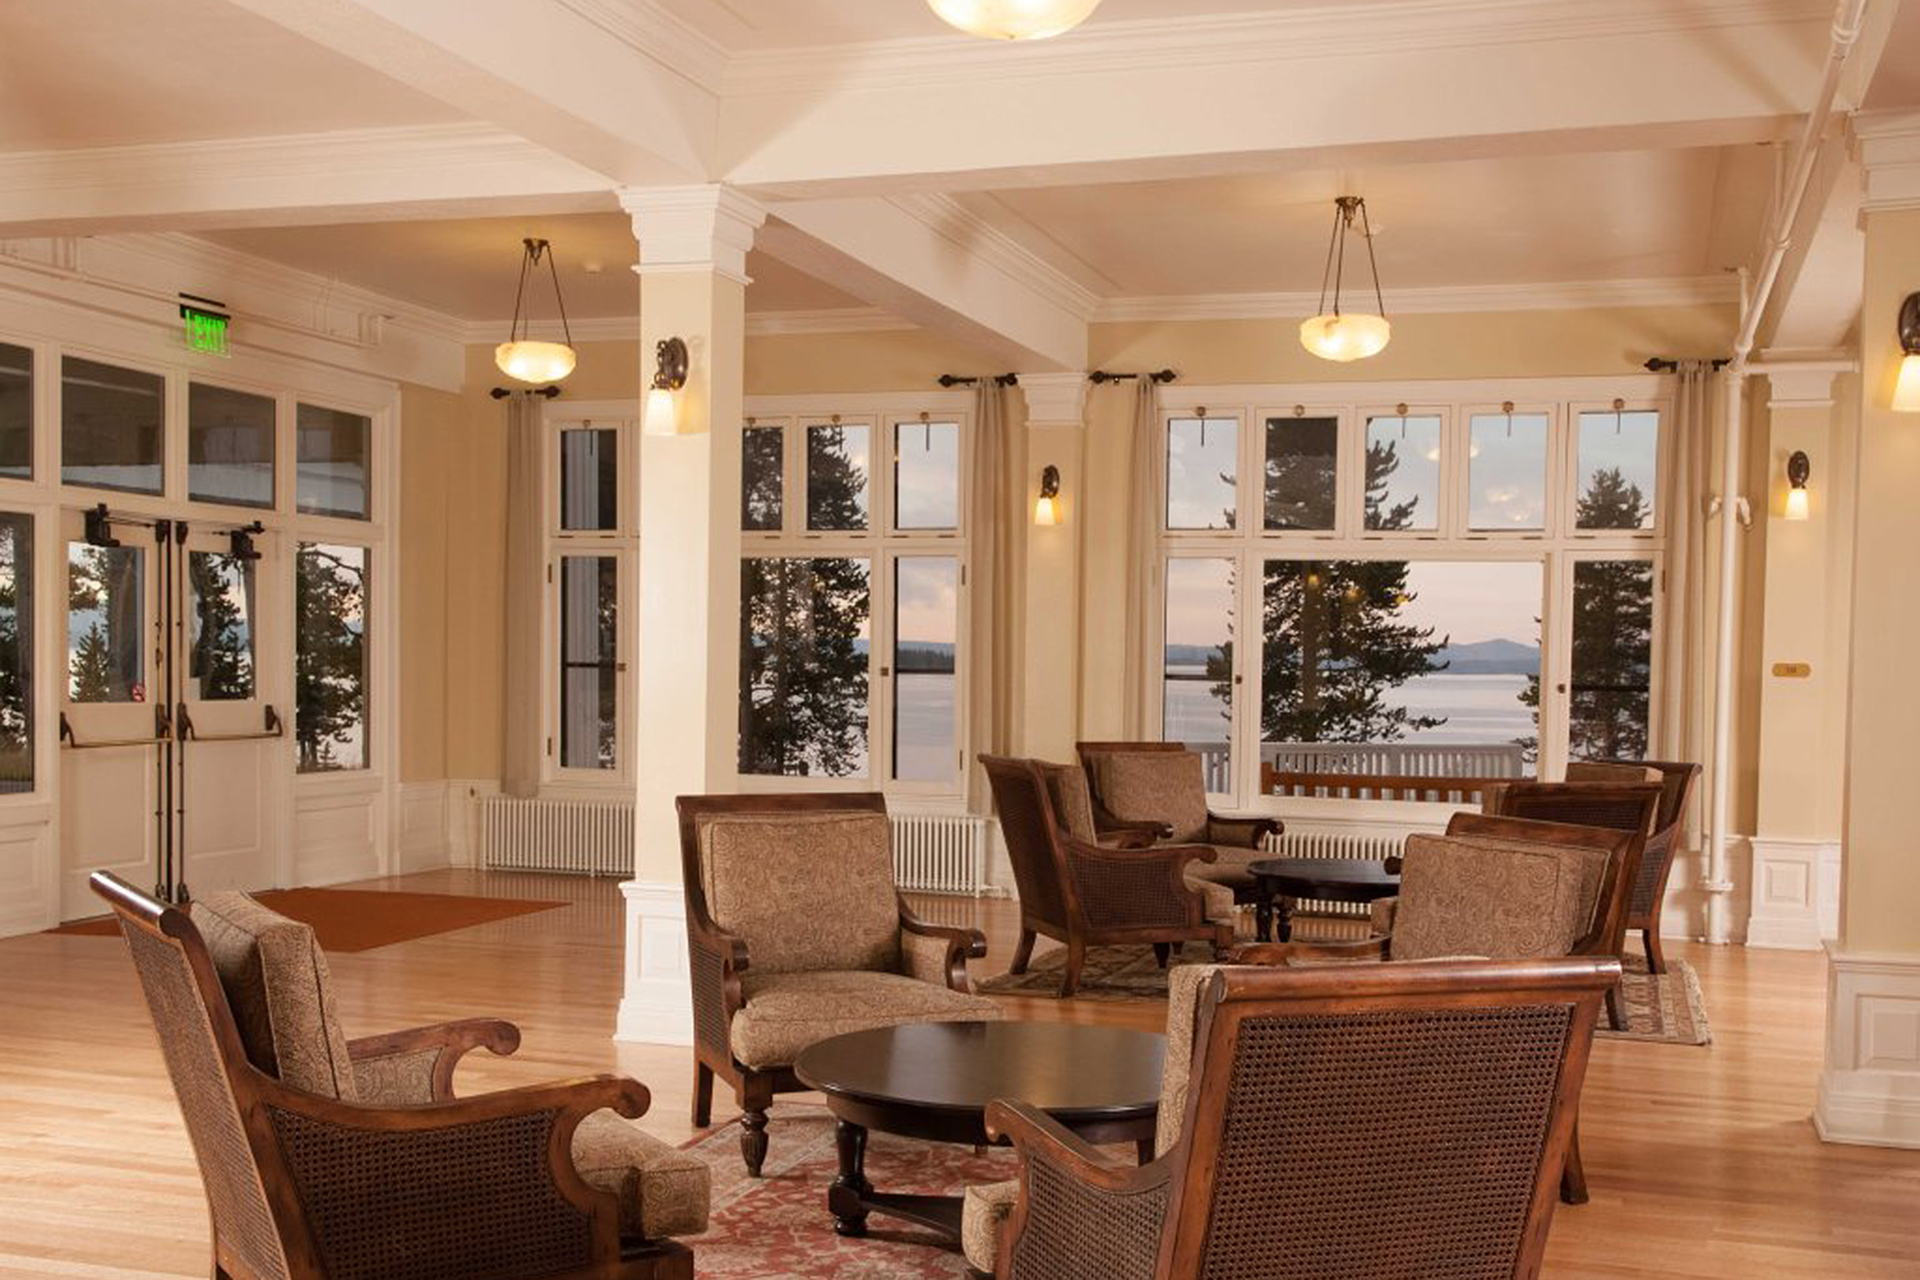 Lake Yellowstone Hotel and Cabins in Yellowstone National Park; Courtesy of Lake Yellowstone Hotel and Cabins